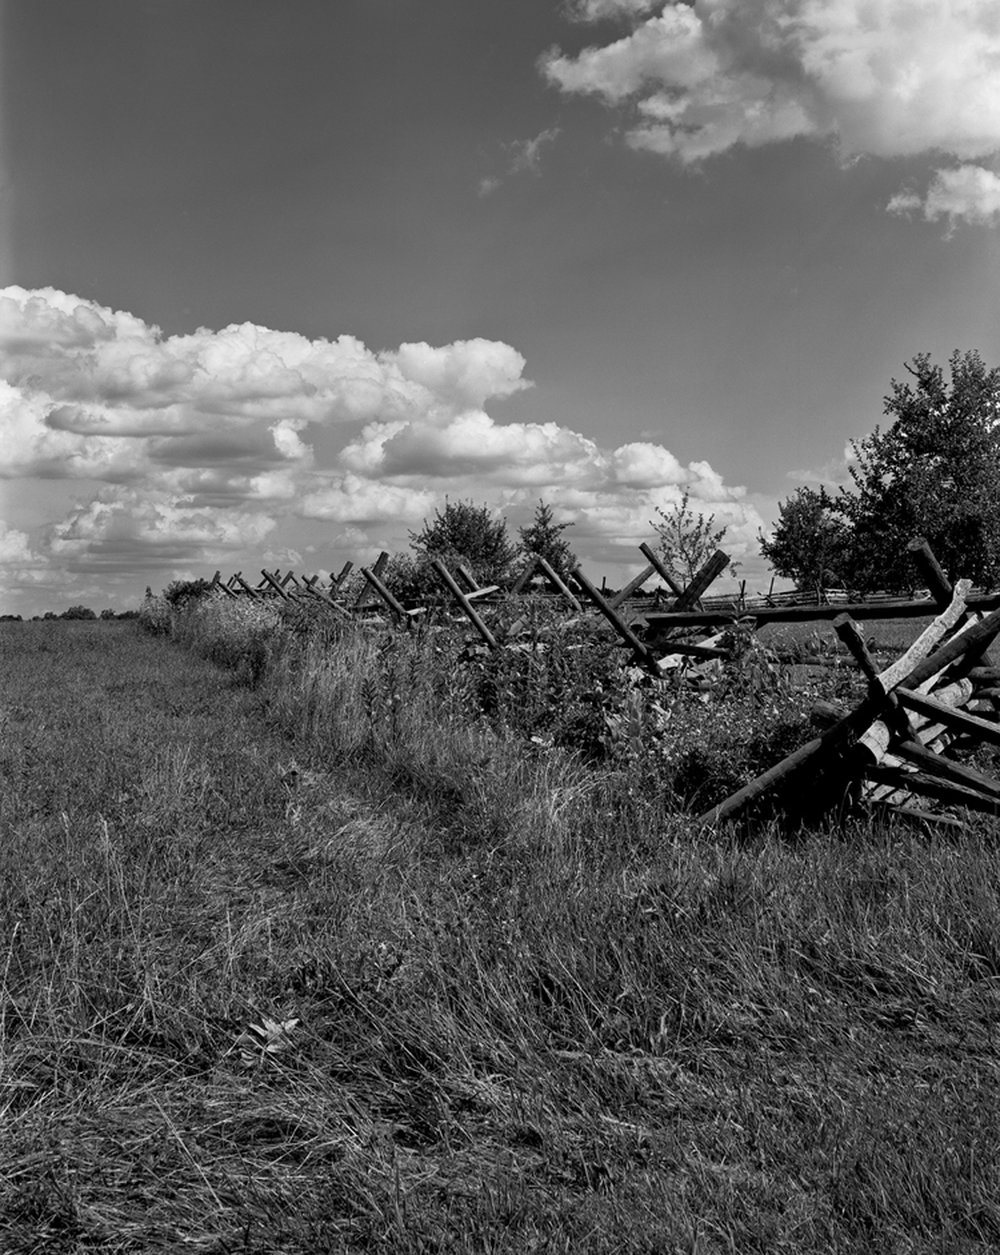 Virginia fencing in a field across from the The Joseph Sherfy barn at Gettysburg.